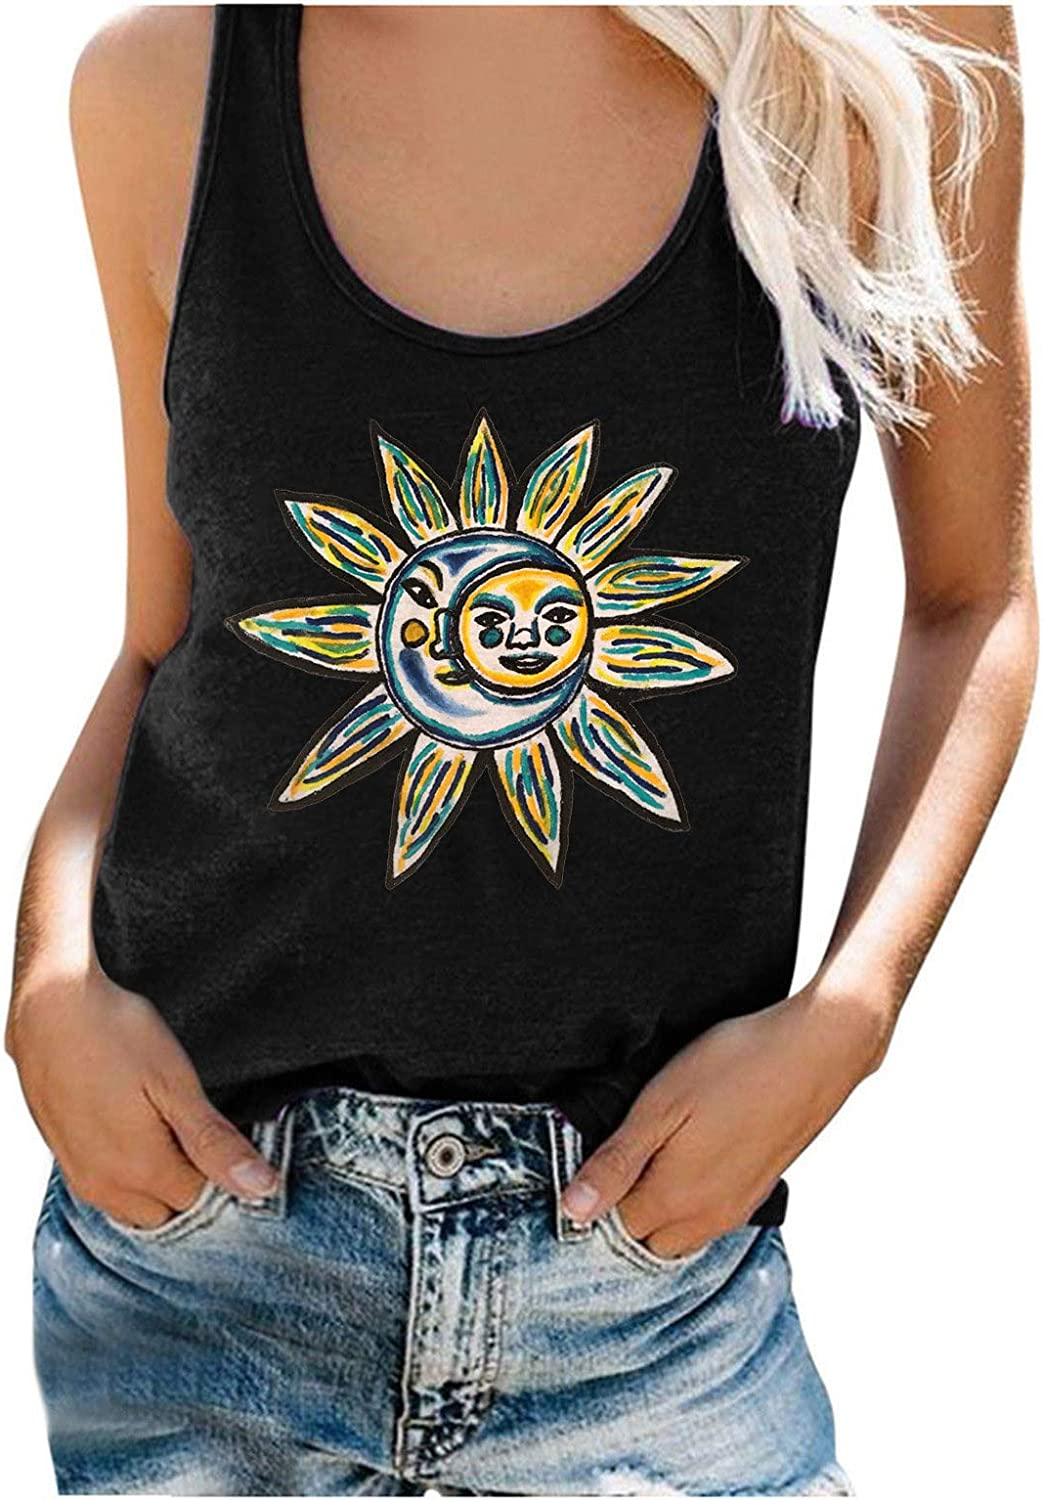 Summer Tops for Women Casual Flower Print Camisoles Tank Tops for Women Button Low-Cut Sleeveless Tunic Shirt Summer Dressy Blouses Sexy Tees Blue